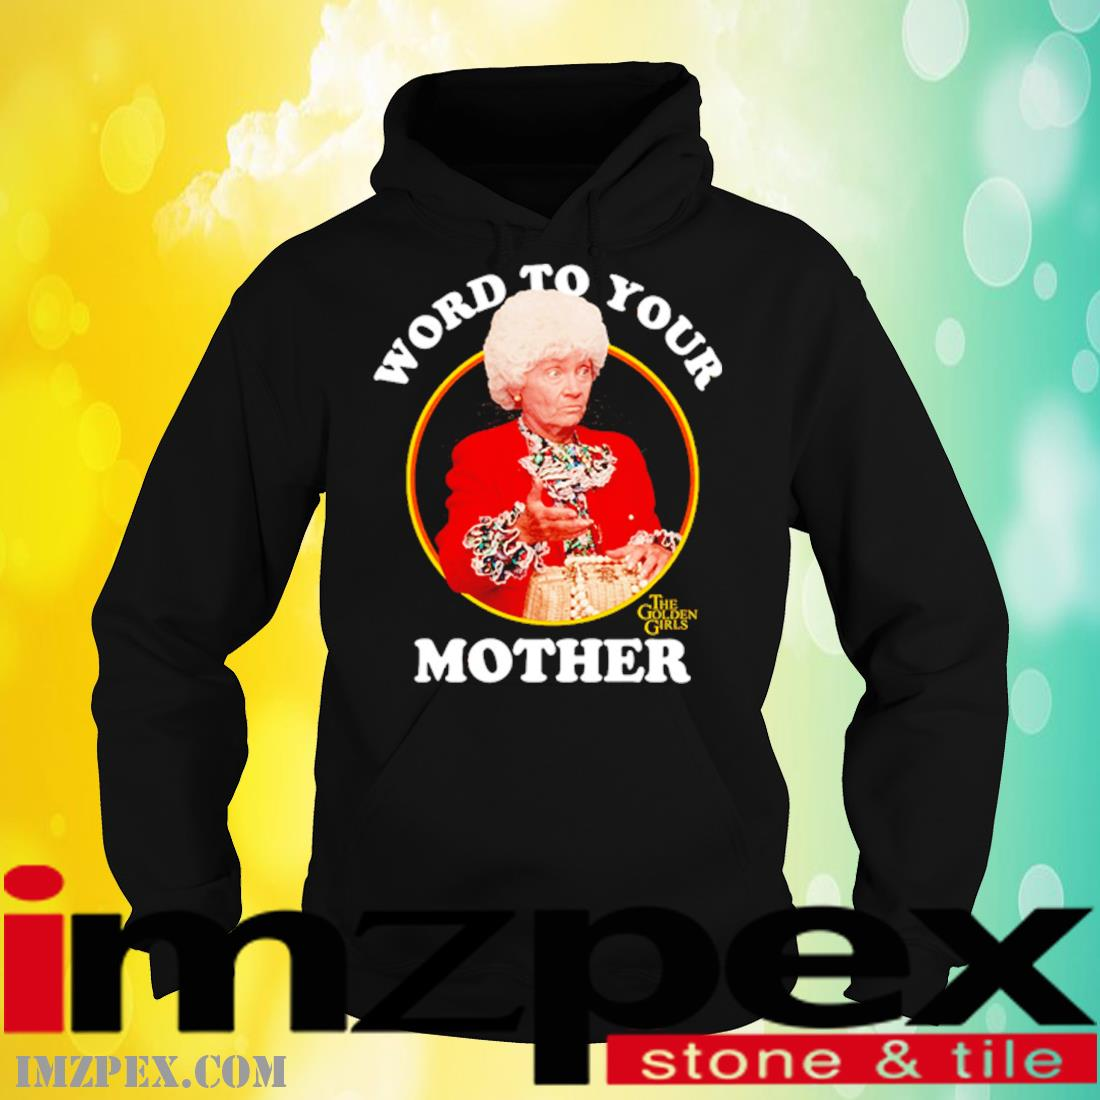 The Golden Girls Word To Your Mother Shirt hoodie